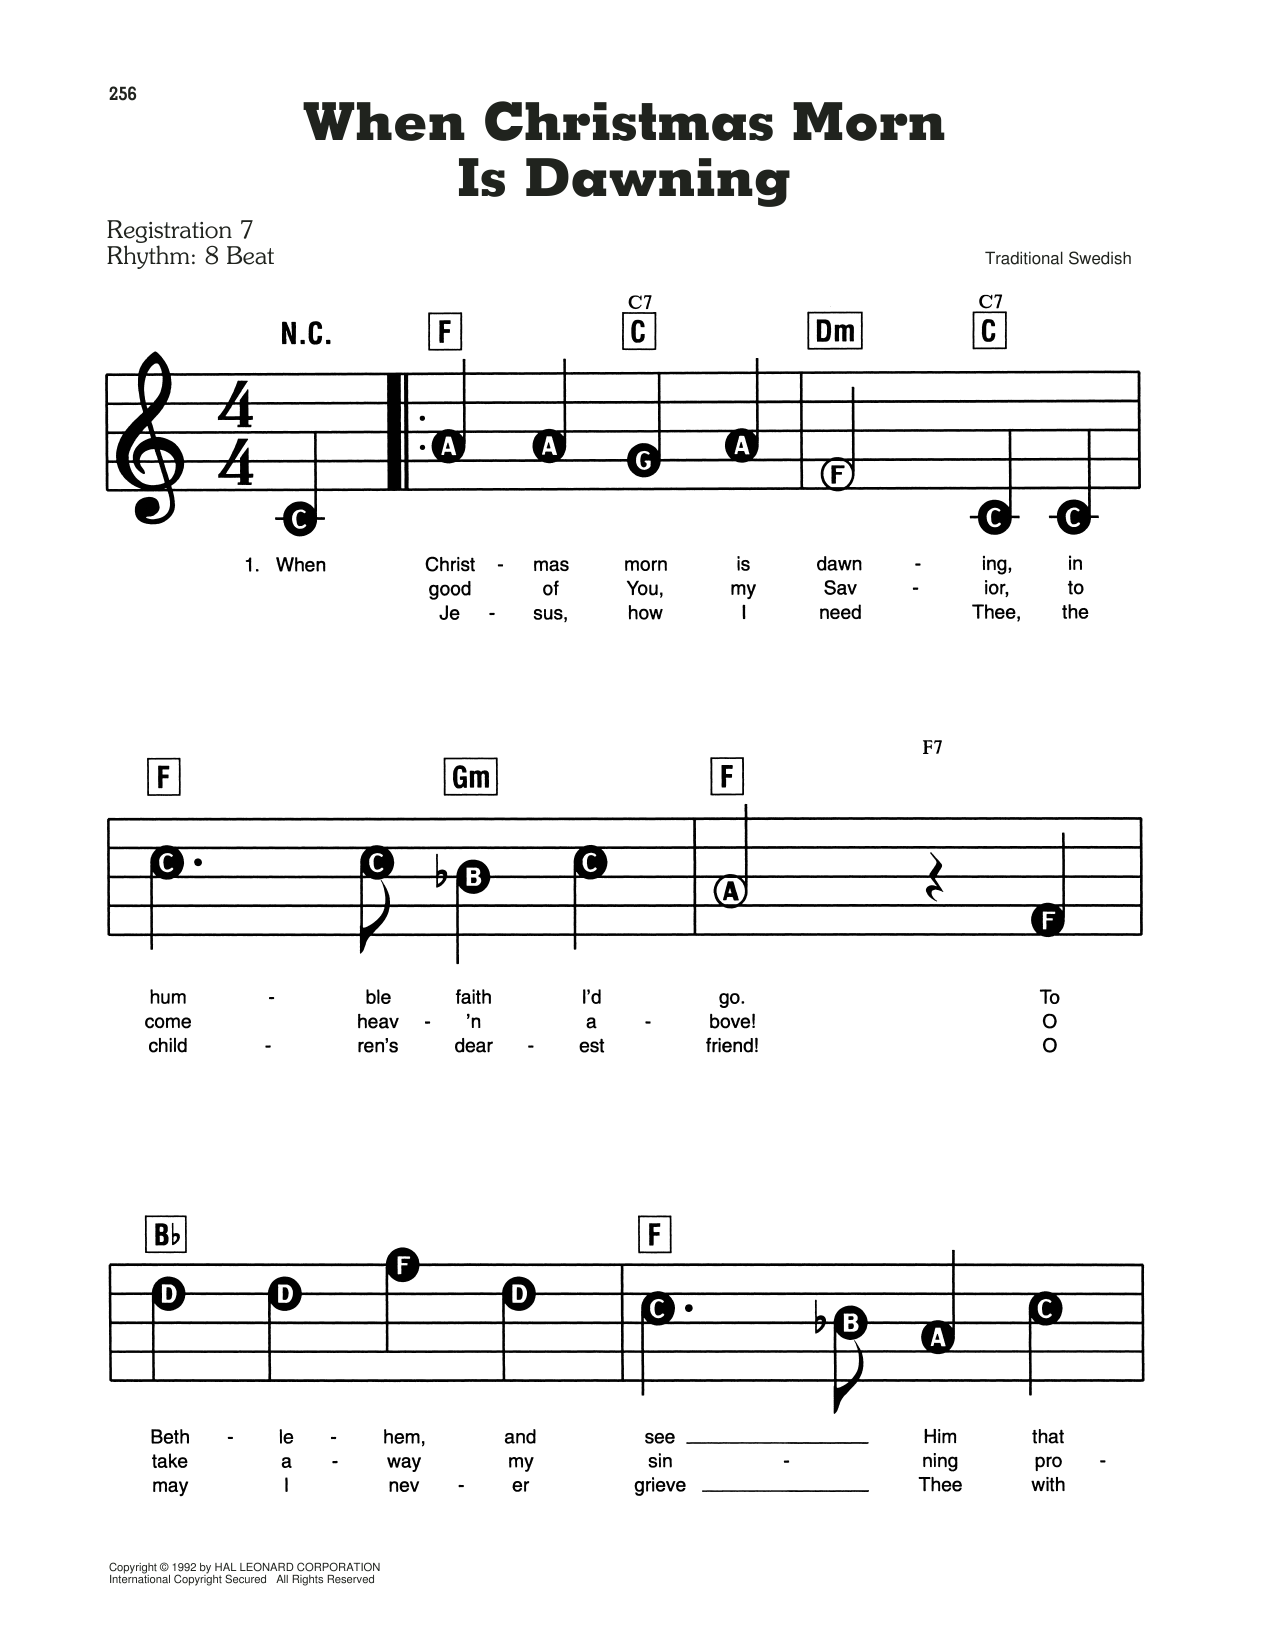 When Christmas Morn Is Dawning Sheet Music